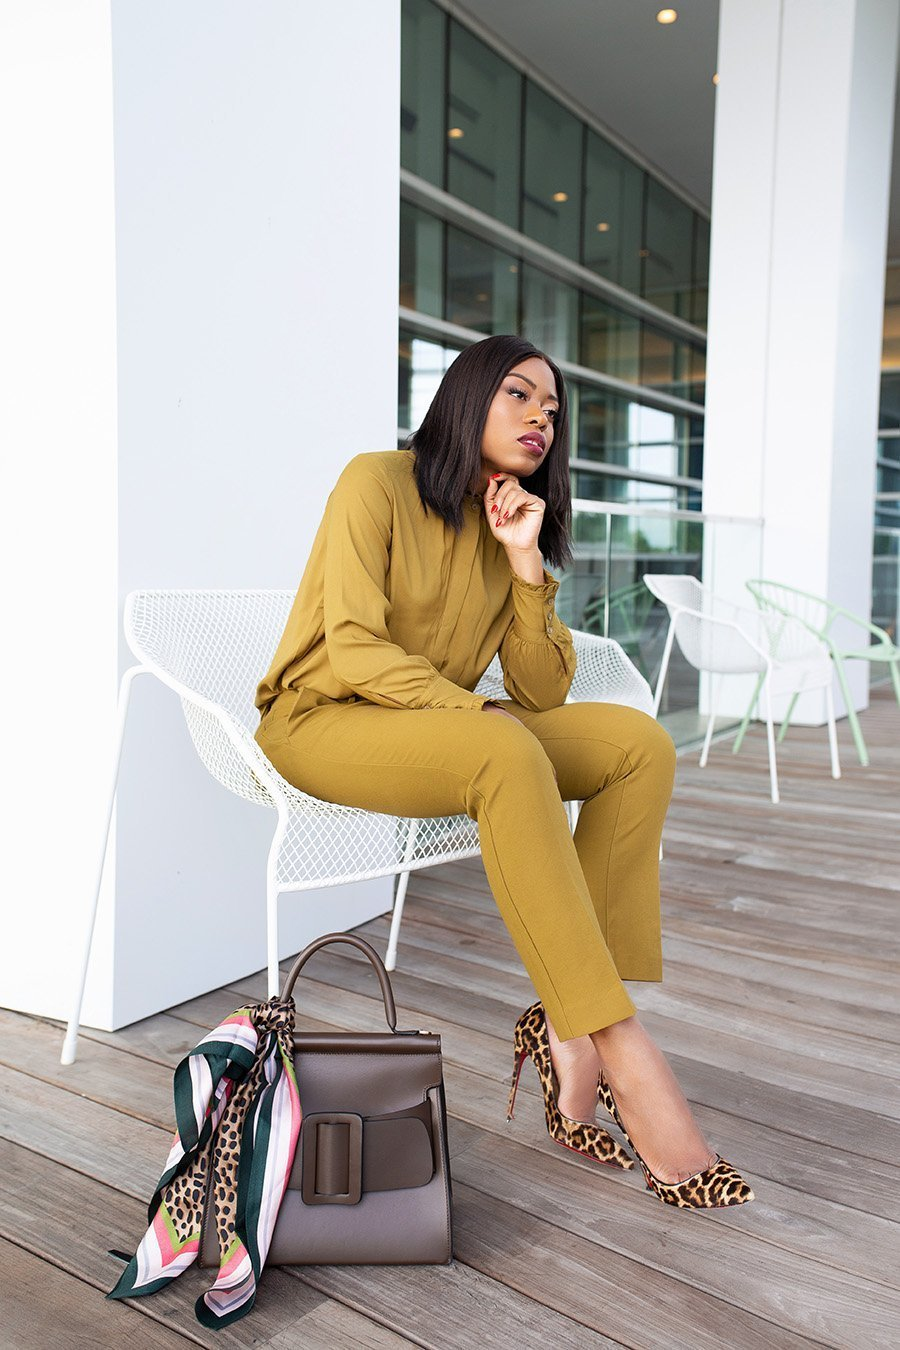 Stella-Adewunmi-shares-what-to-wear-to-work-today